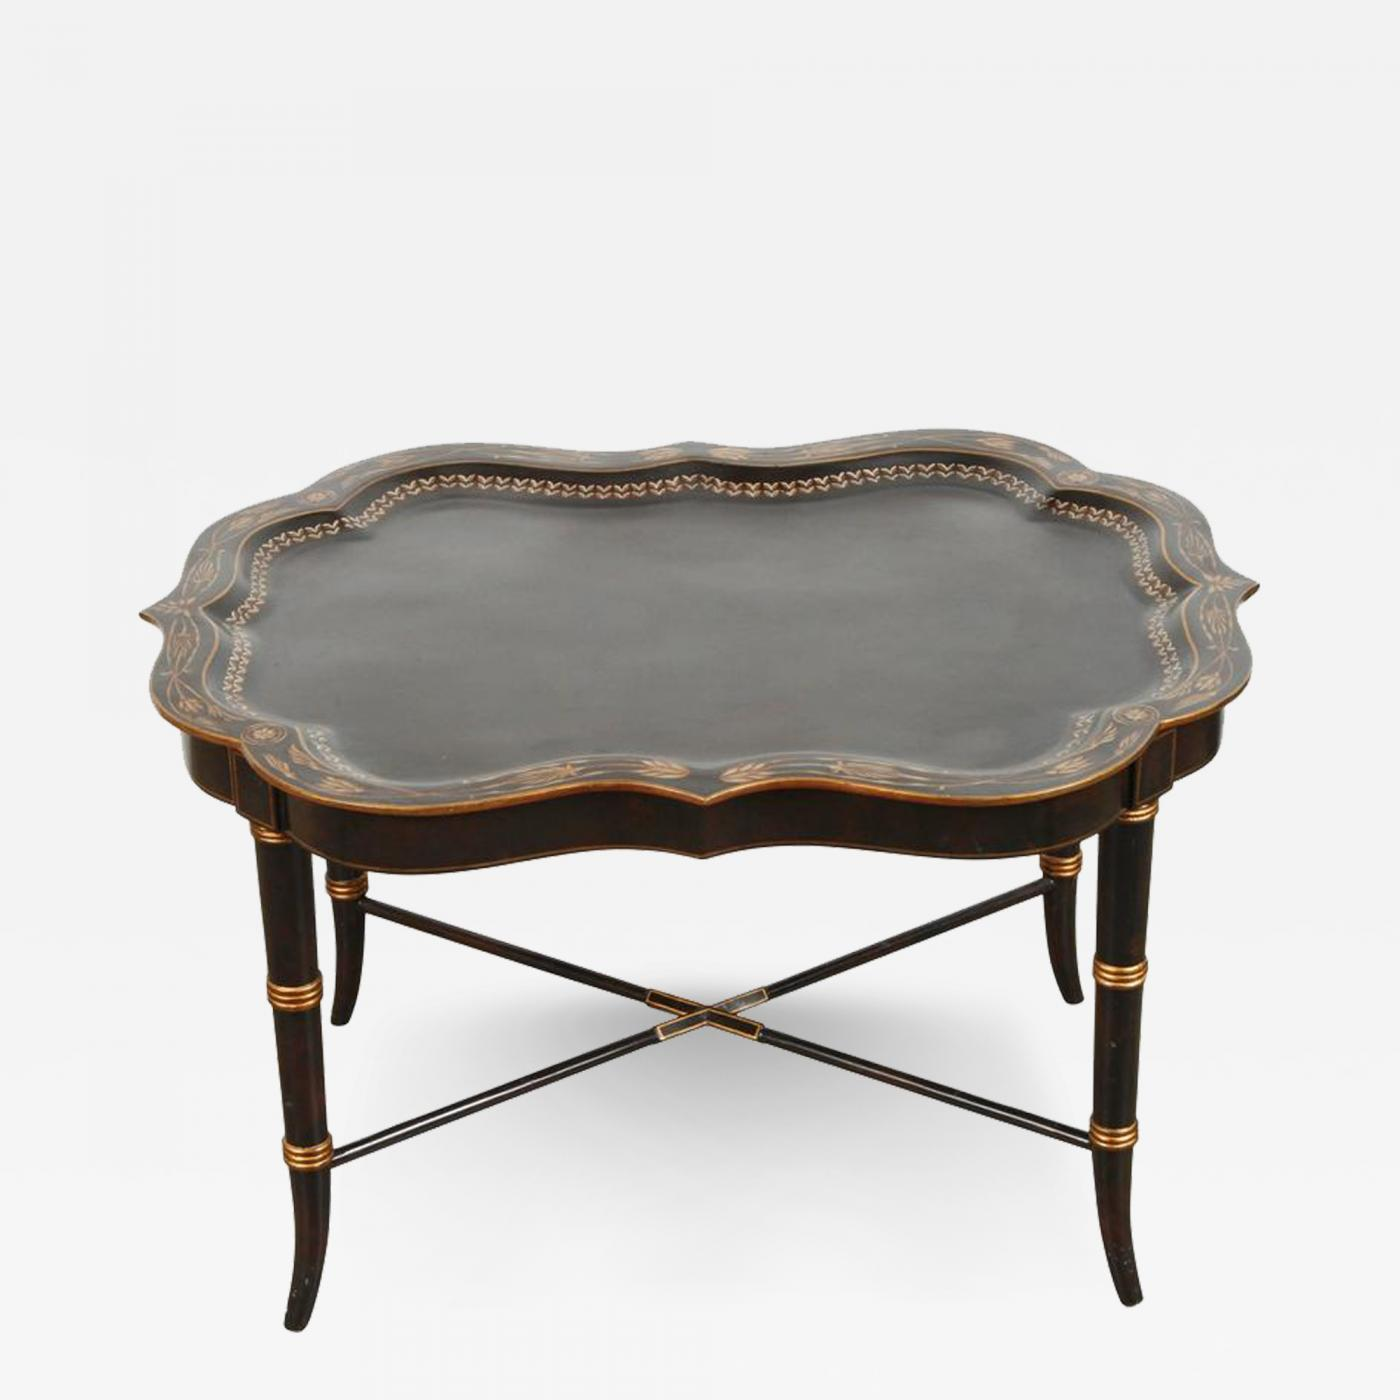 Maitland smith hand painted black tray coffee table by maitland listings furniture tables serving tables maitland smith hand painted black tray coffee geotapseo Image collections